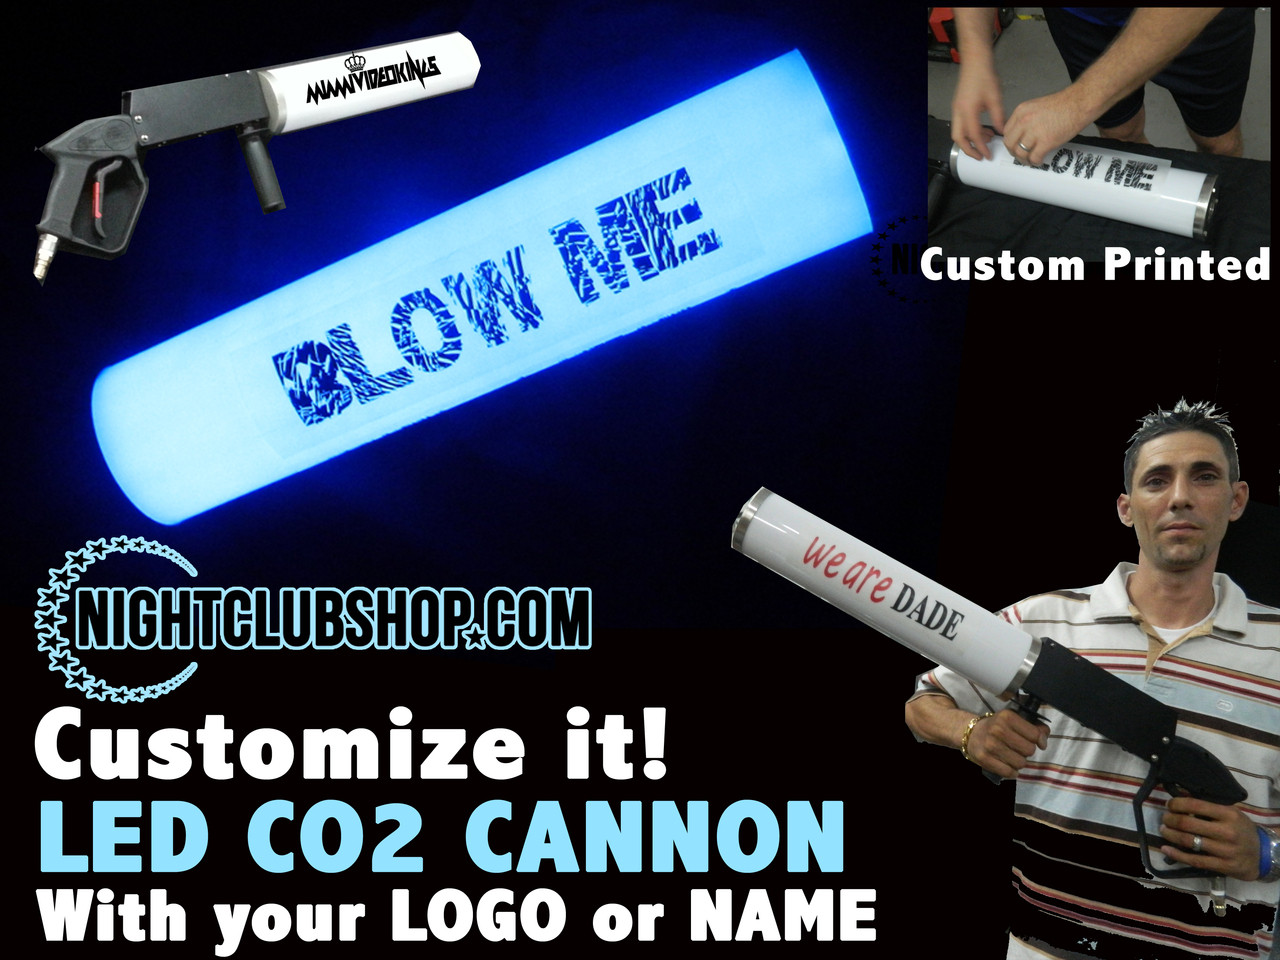 get, comprar, CO2 Gun, CO2 Cannon, CO2 Blast, LED CO2, Party Cannon, Gas Gun, Gas Cannon, CO2 Jet, CO2, Gun, Cannon, Blaster, c02, gas, Special Effect, FX, Nightclub, rave, Electro, Custom, Logo, Personalized, cryo, kryo, kryogenifex